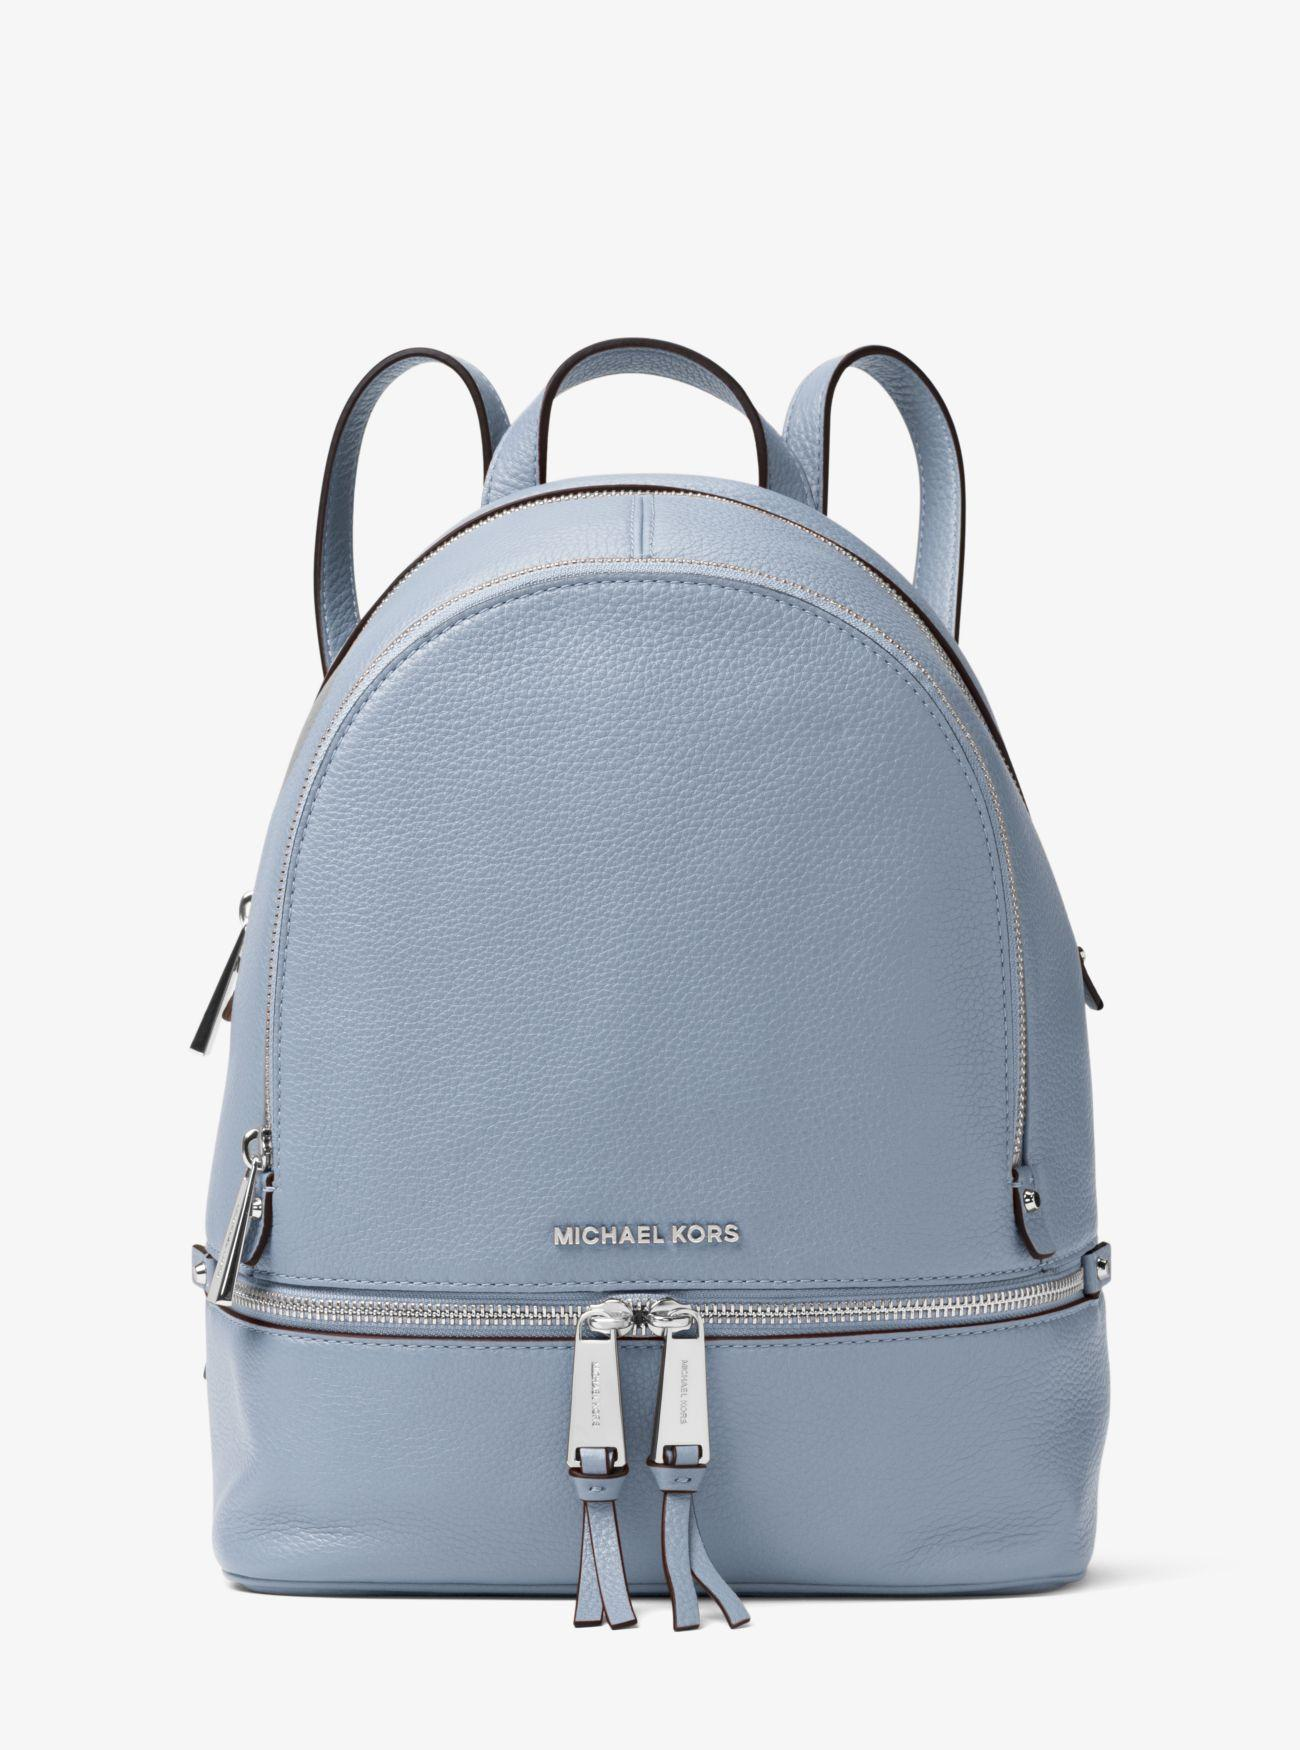 efd5a7c42392 Michael Kors - Blue Rhea Medium Backpack - Lyst. View fullscreen